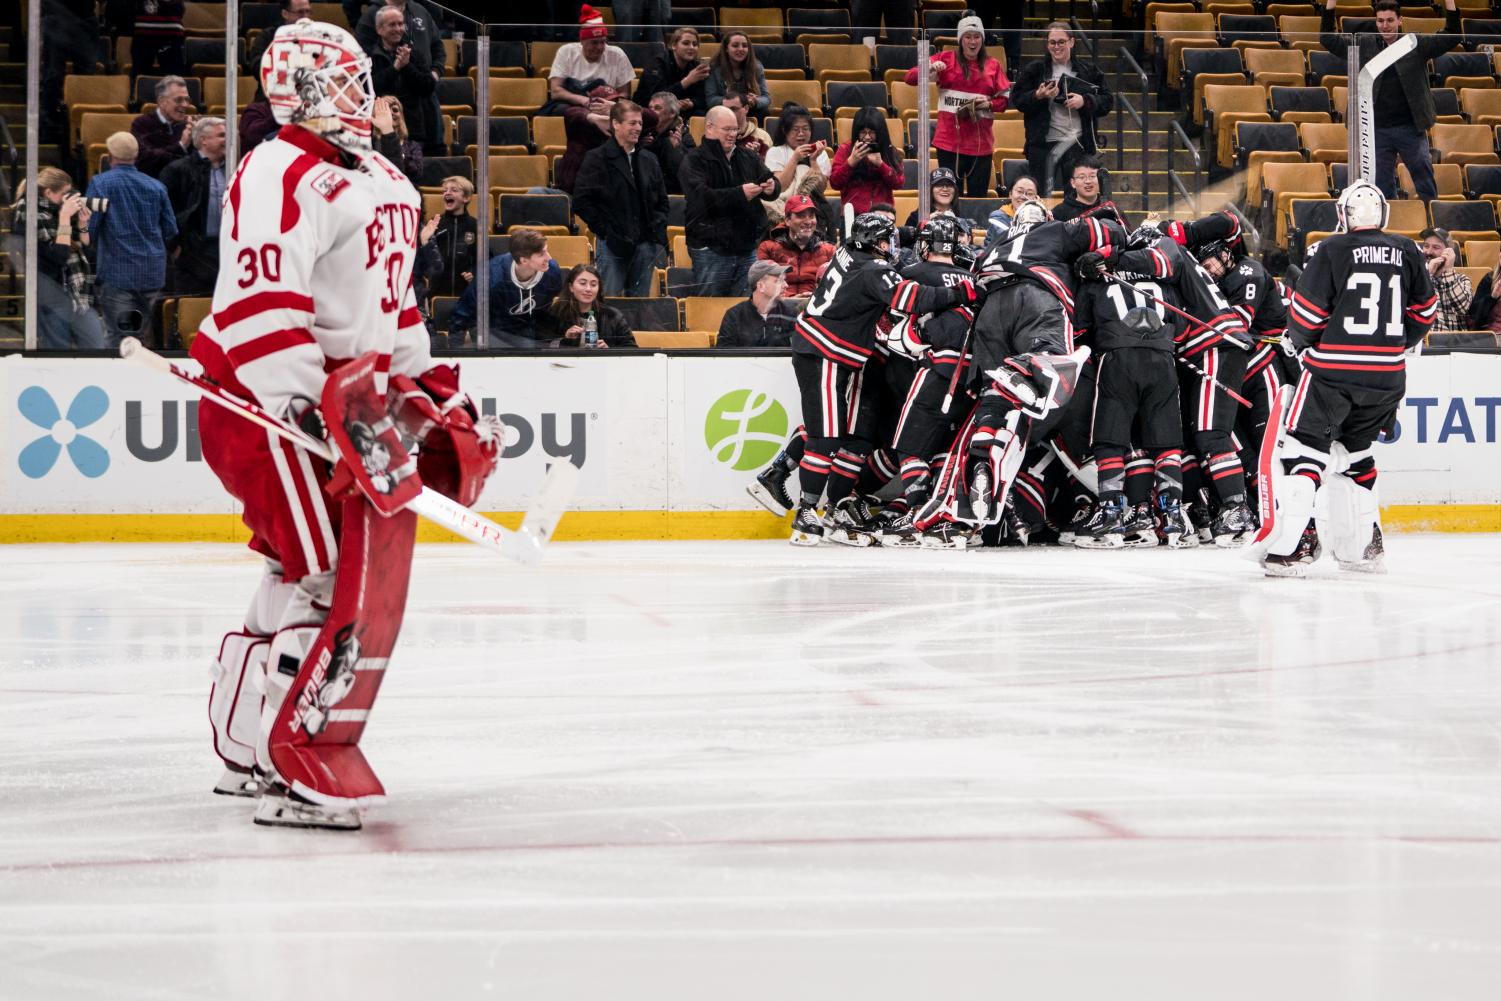 BU goalie Jake Oettinger skates off after the Huskies scored in overtime on their 49th shot. Oettinger's incredible 47 saves weren't enough.